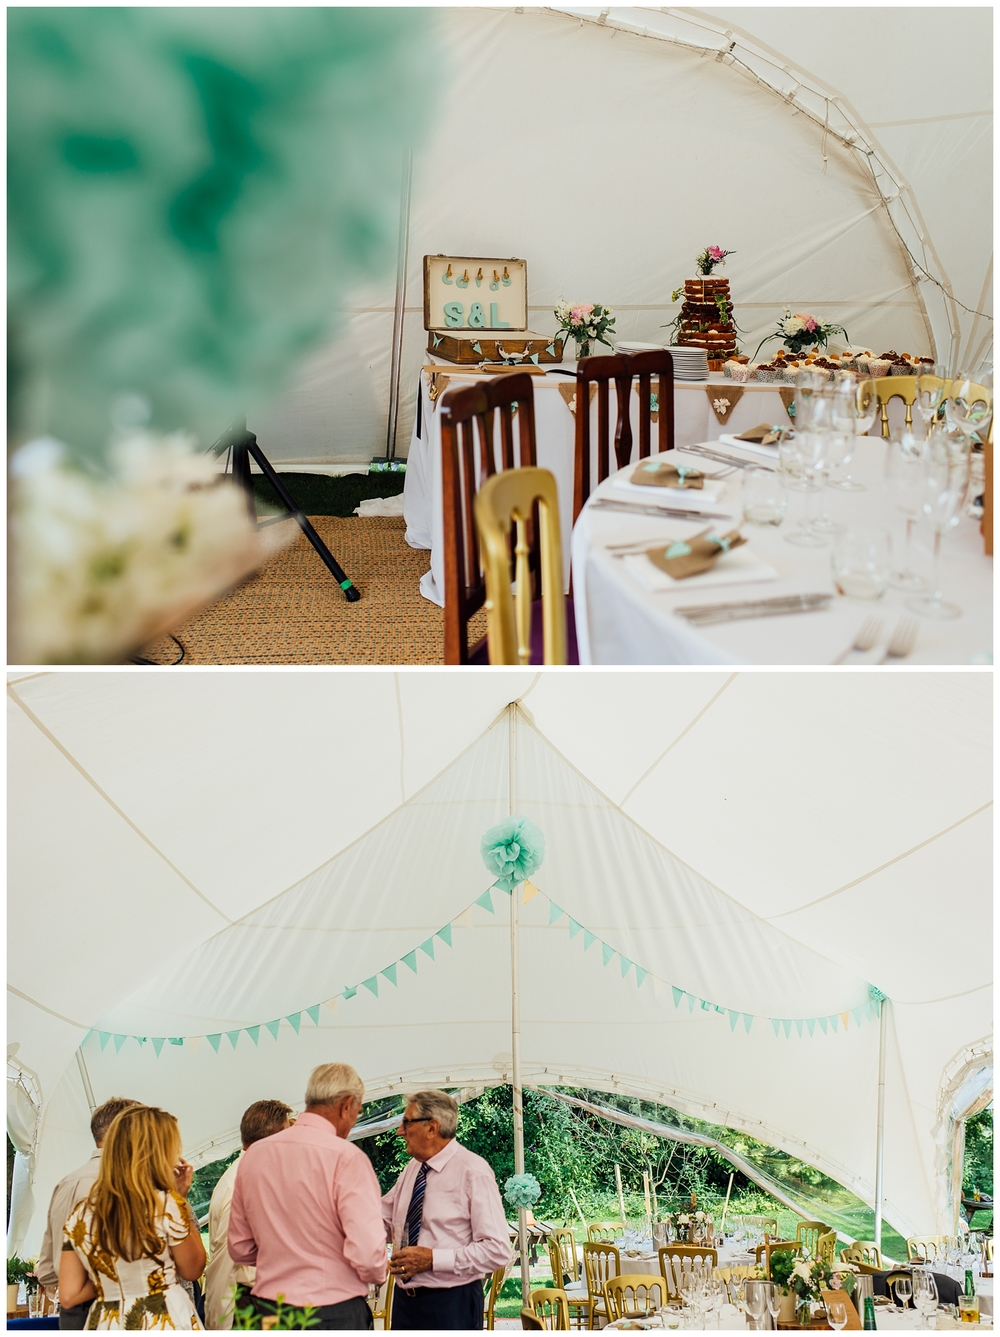 Nikki_Cooper_Photography_Lucy&Scott_Wedding_Photos_The_Crab_Tree_Pub_Horsham_1071.jpg